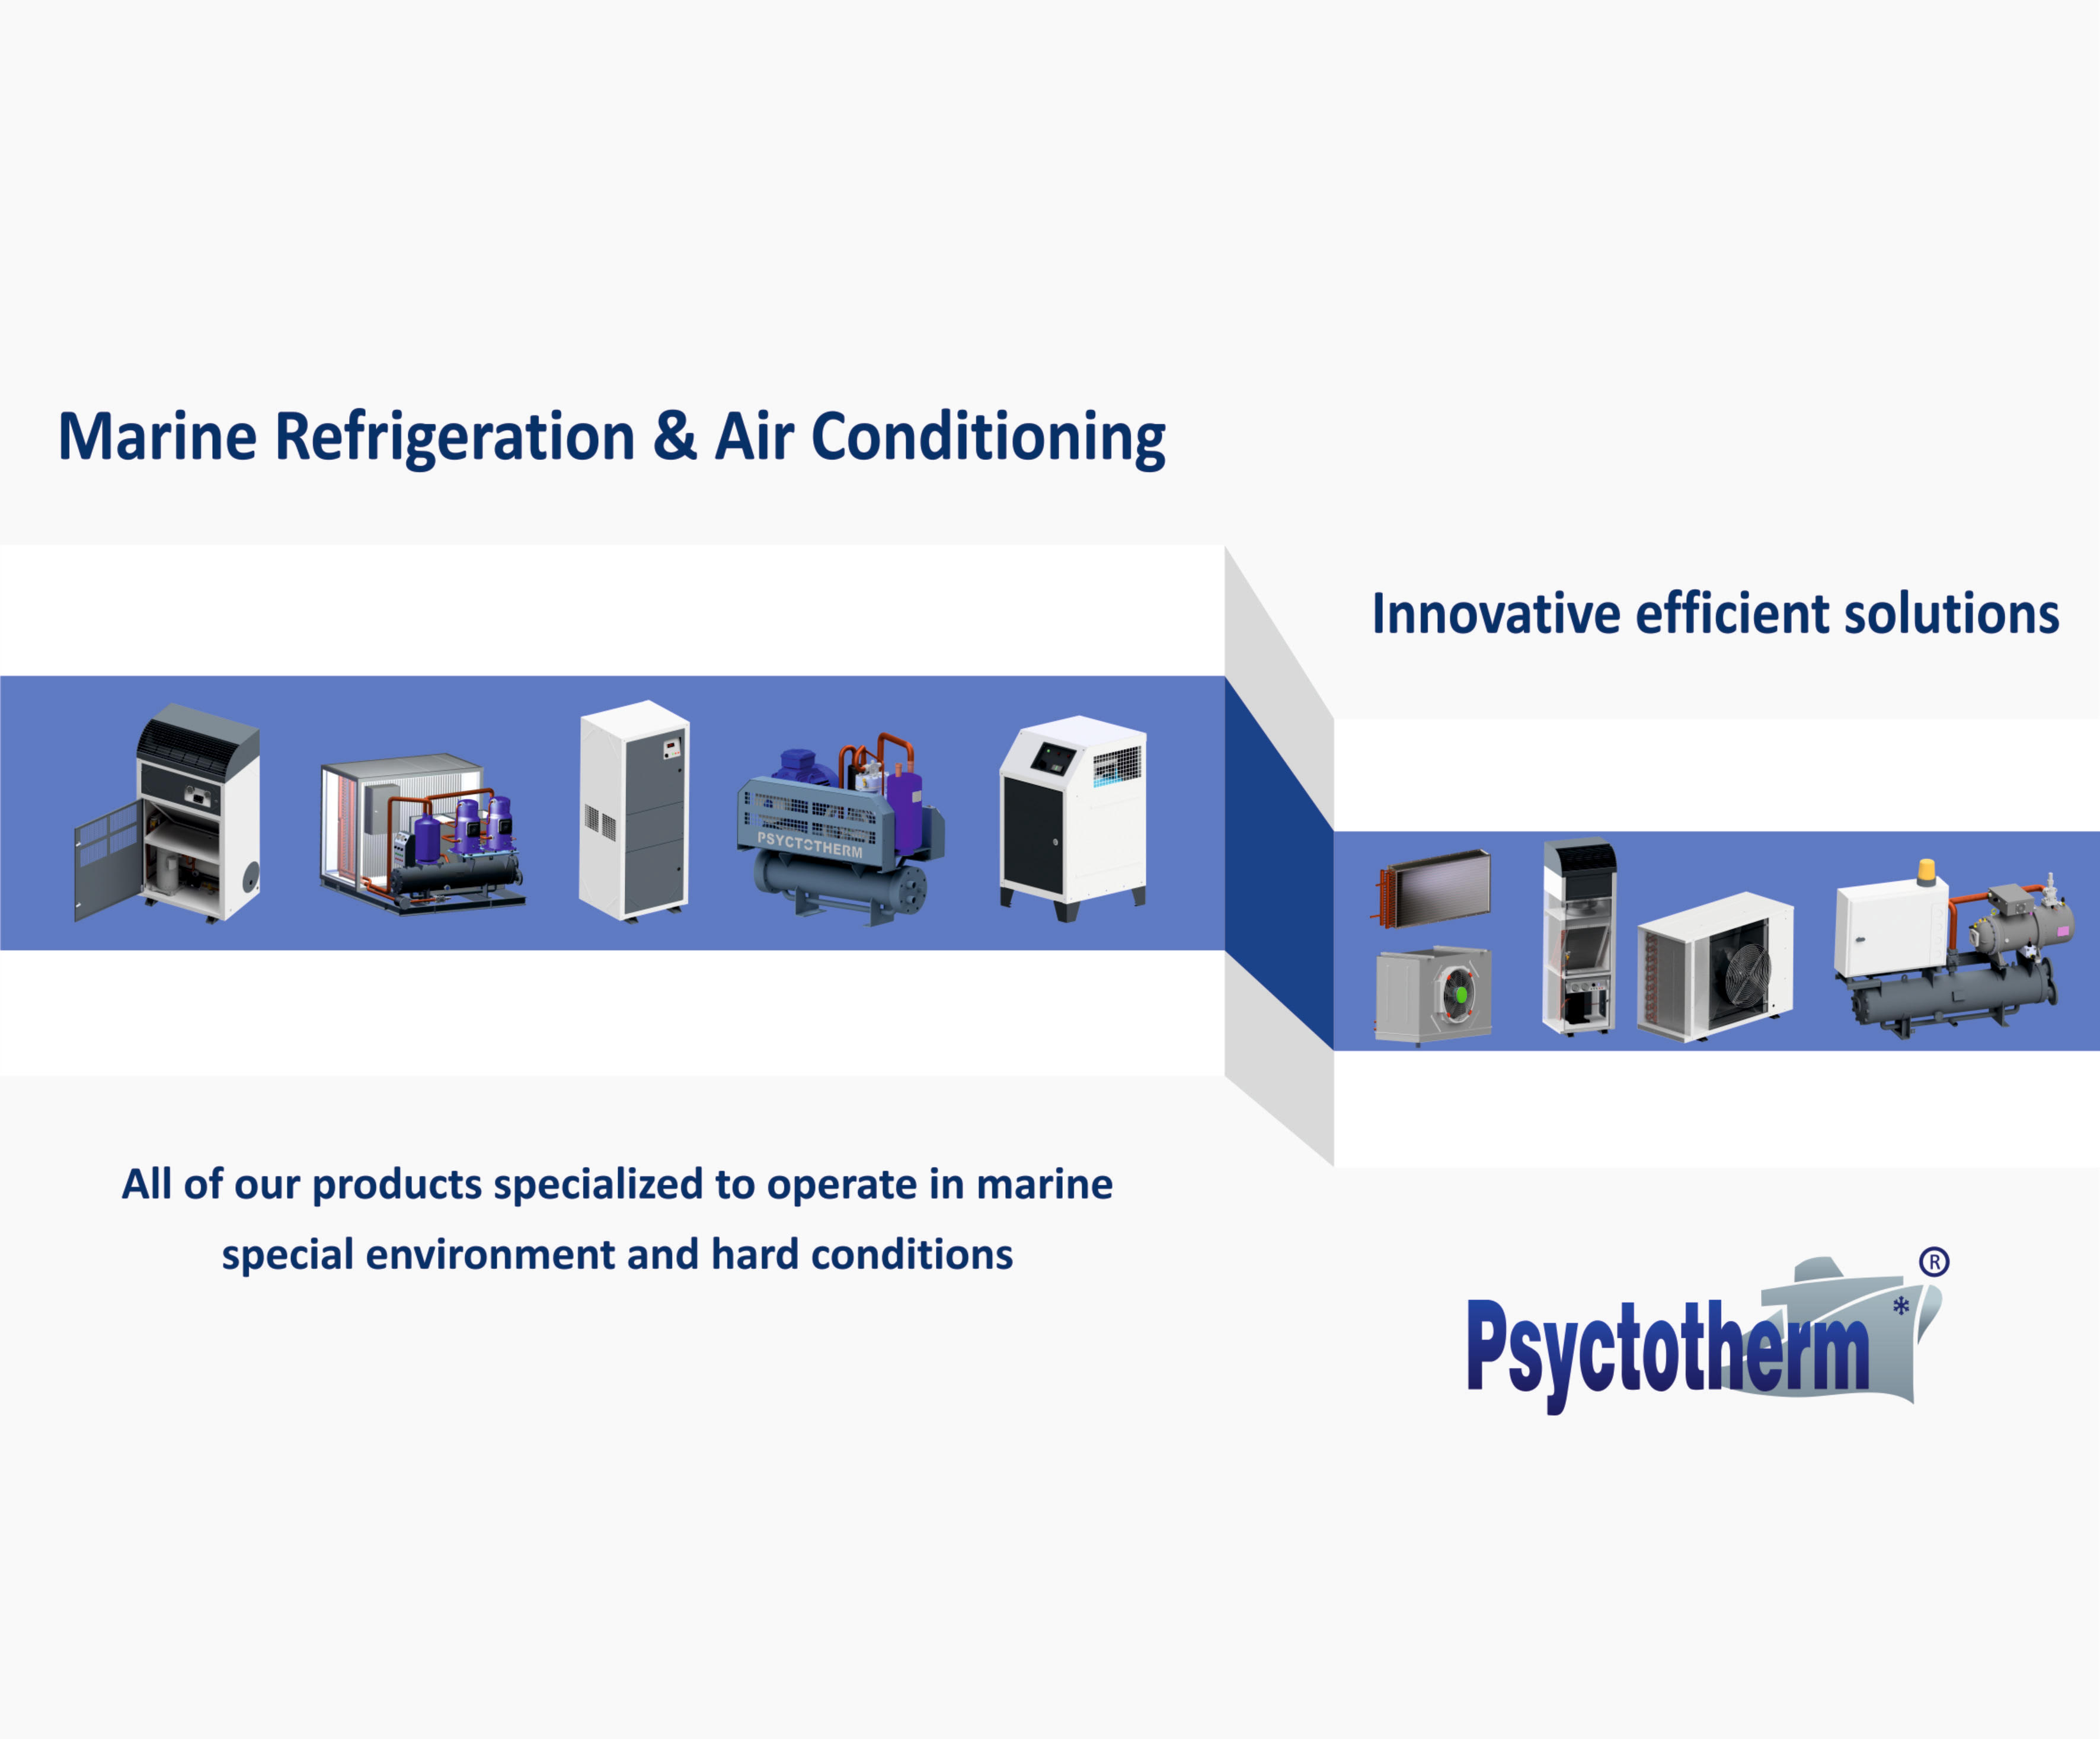 PSYCTOTHERM BANNER